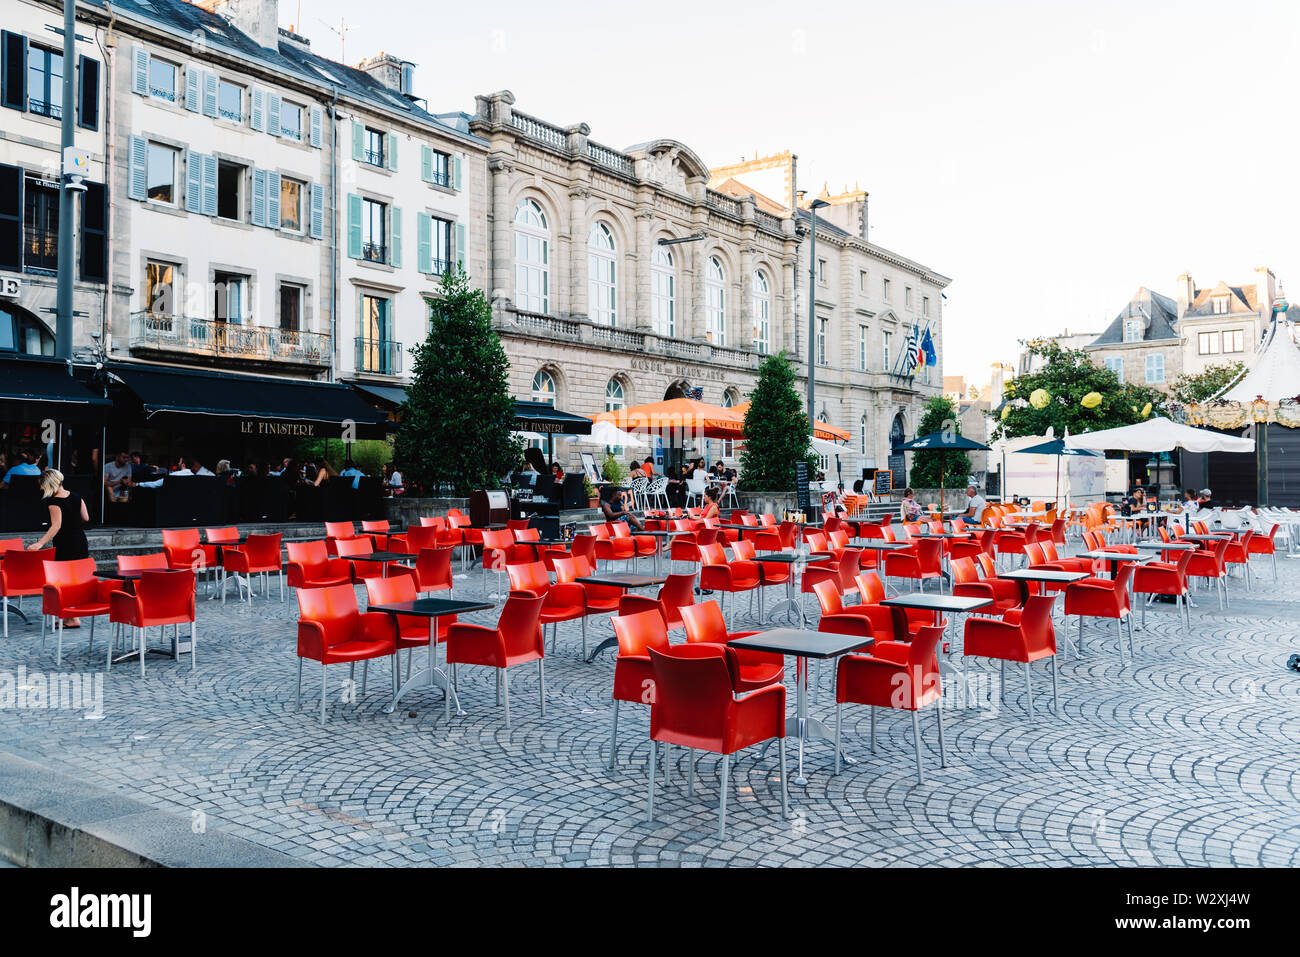 Quimper, France - August 2, 2018: Cityscape of the old town of Quimper, the capital of the Finistere department of Brittany in northwestern France Stock Photo